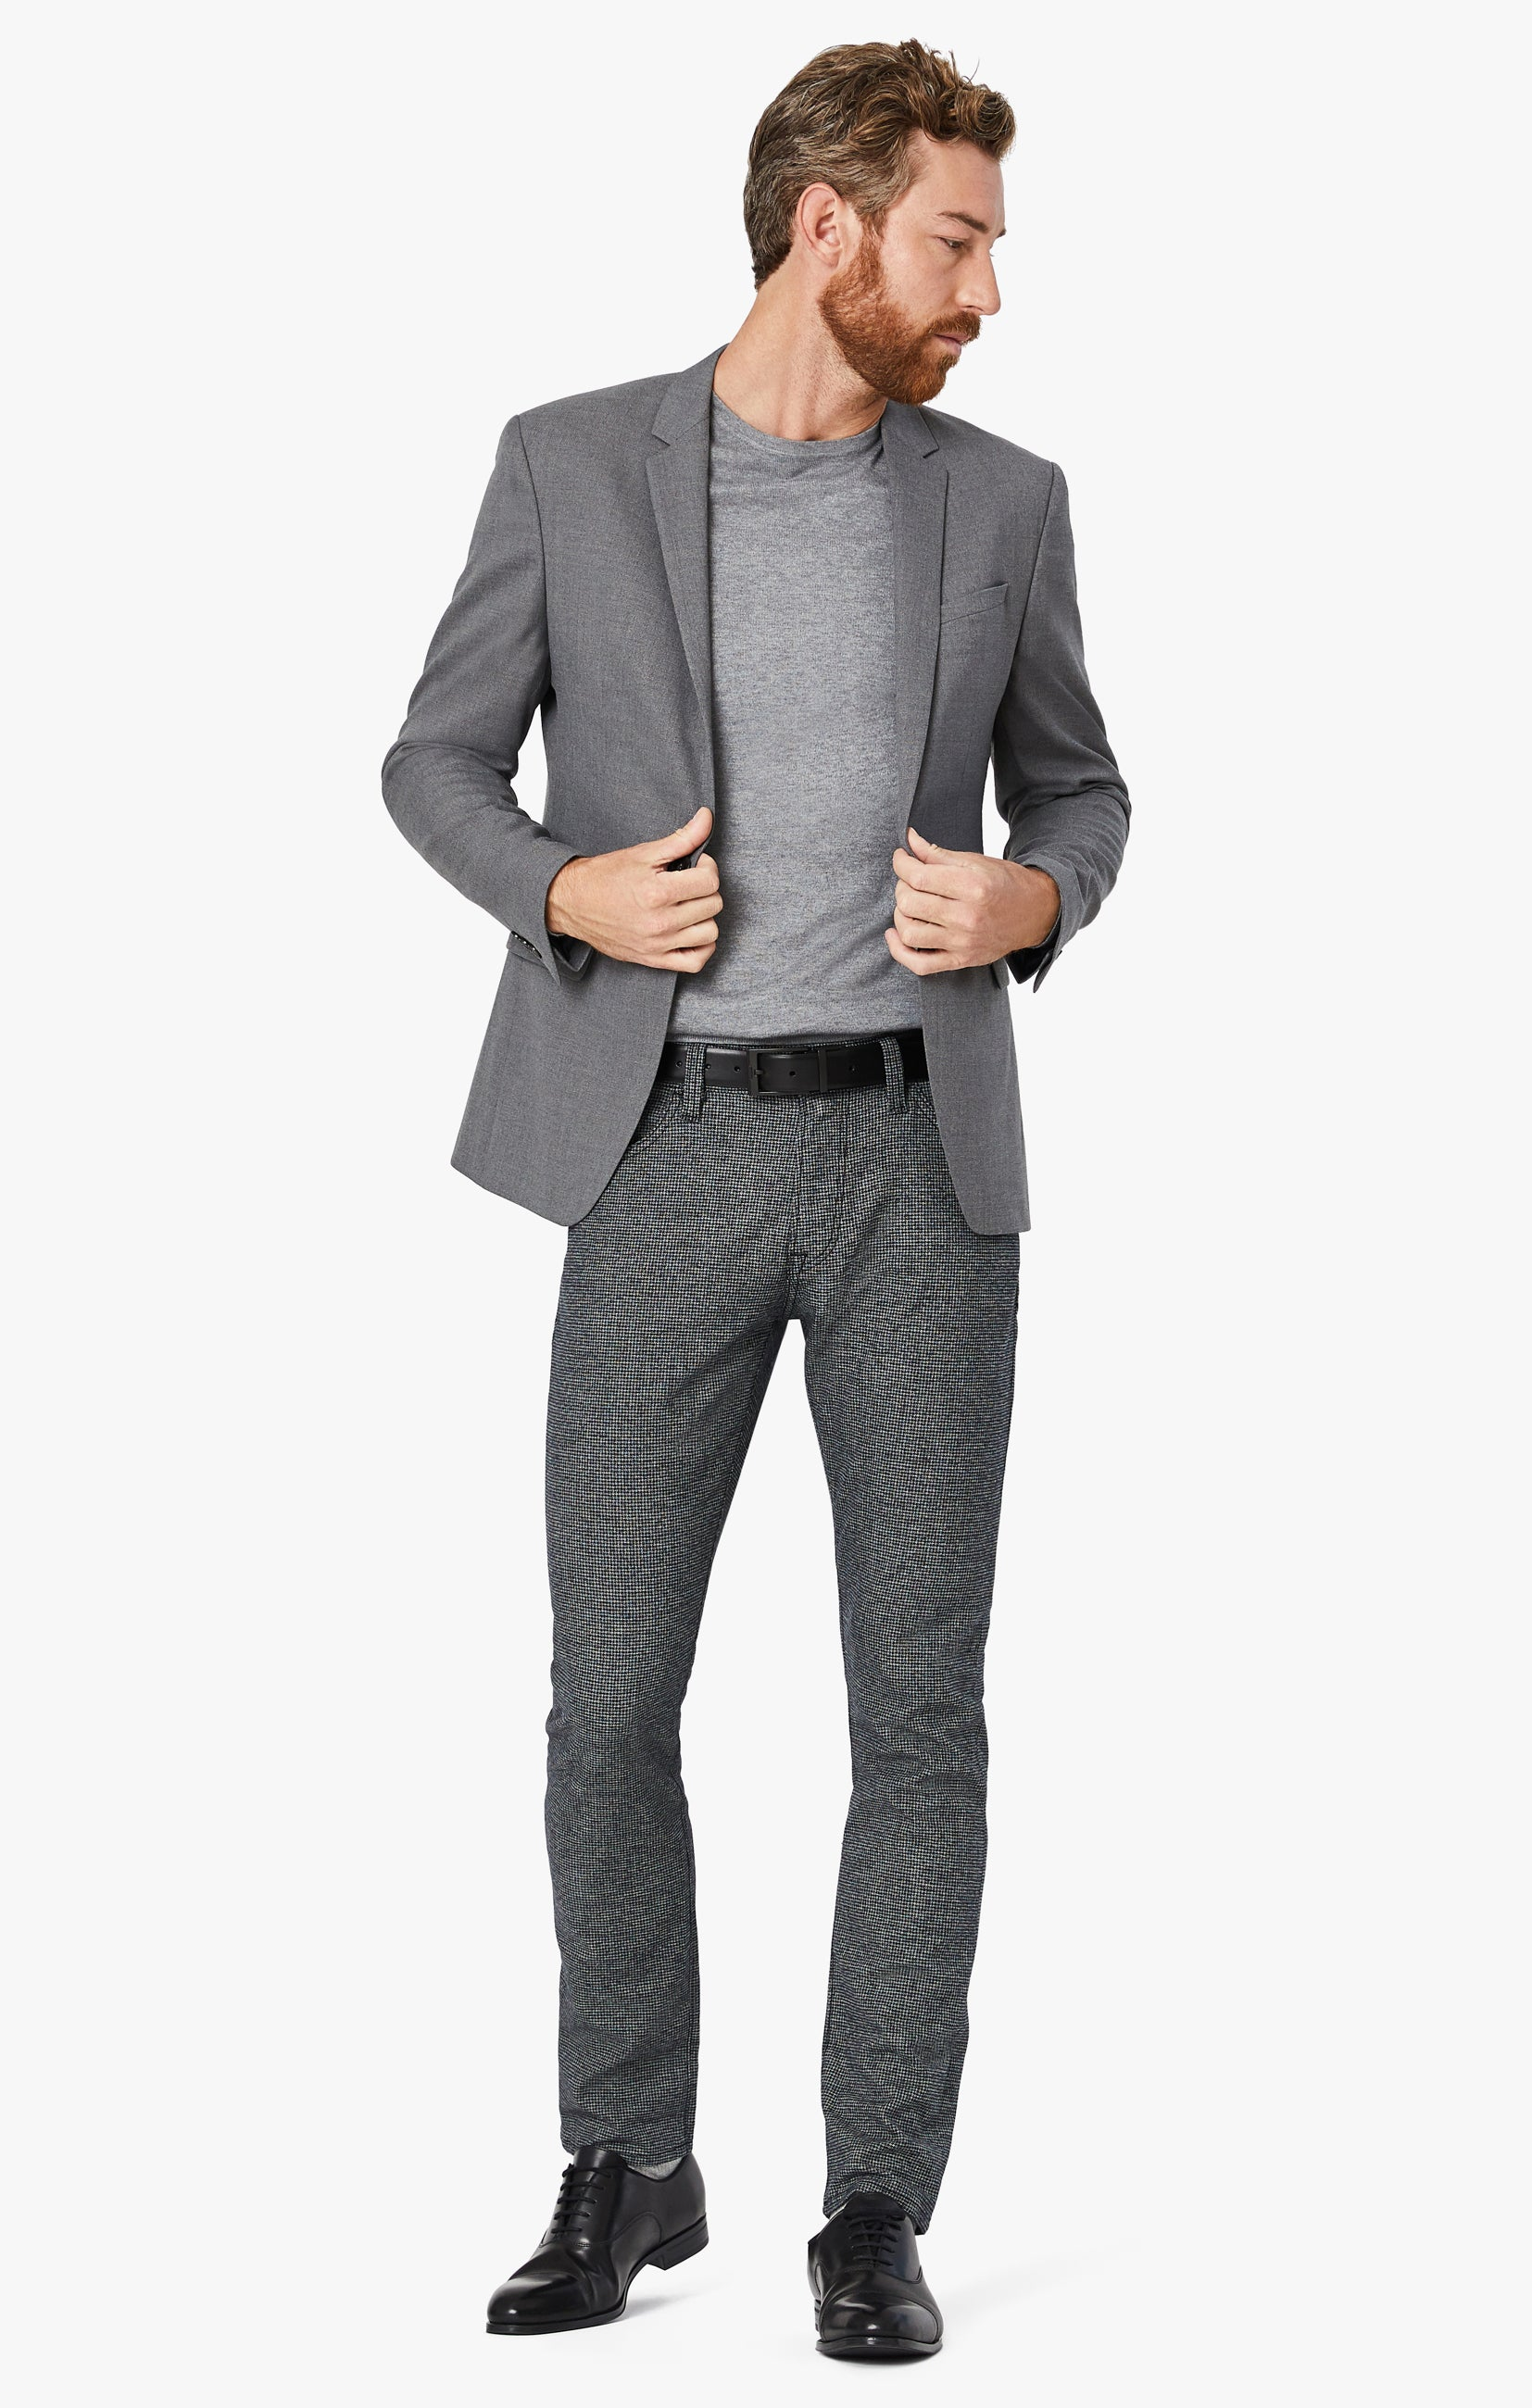 Courage Straight Leg Pants In Grey Houndstooth Image 7